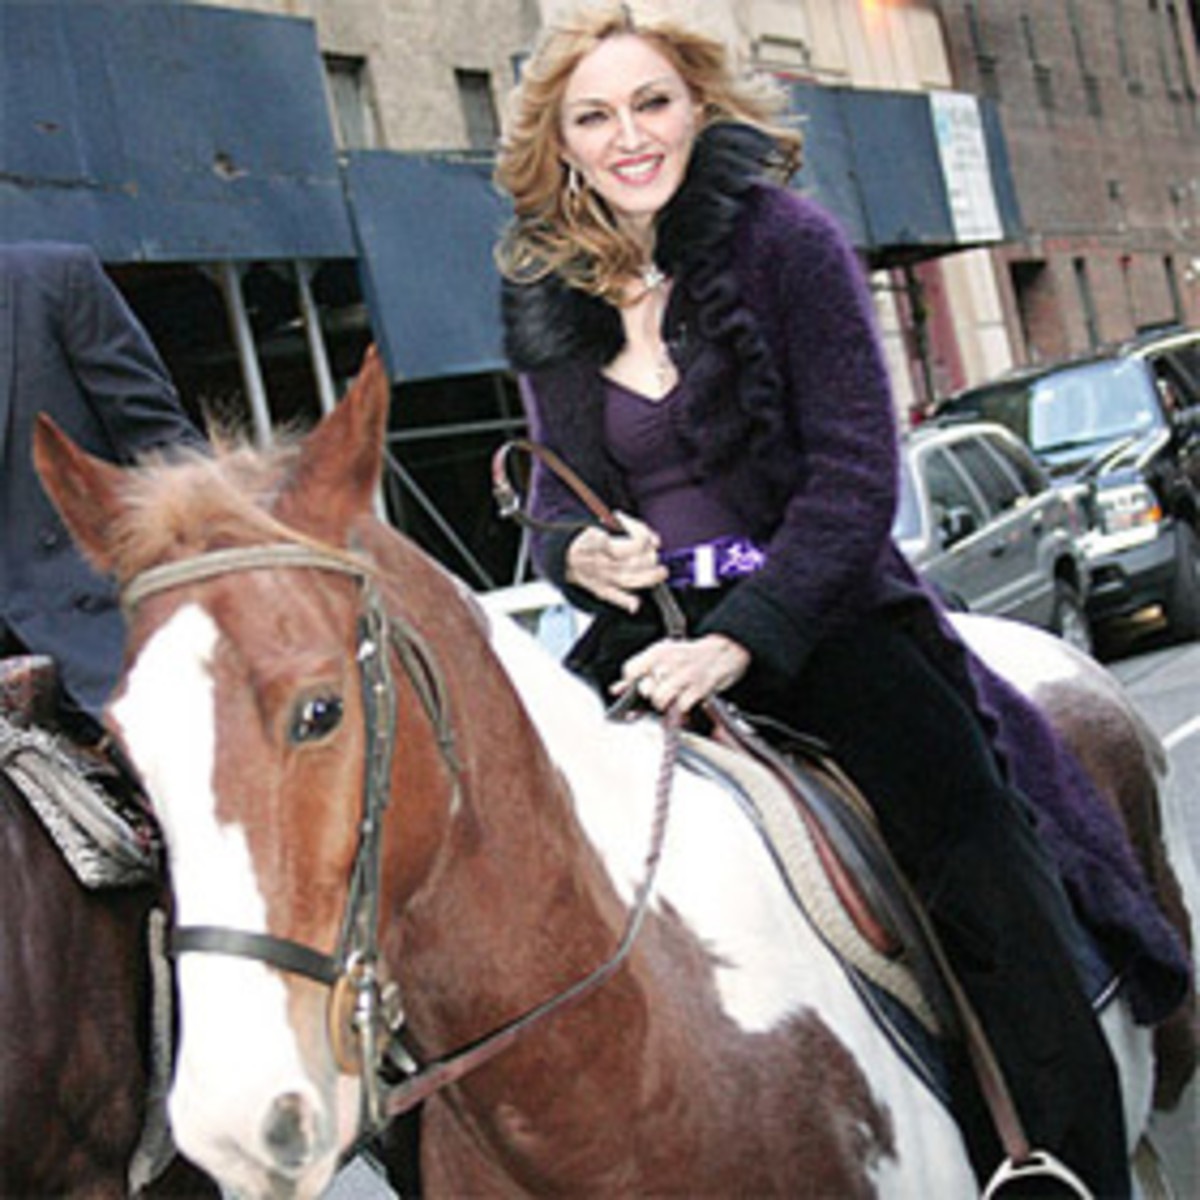 Madonna rides a horse in what appears to be New York